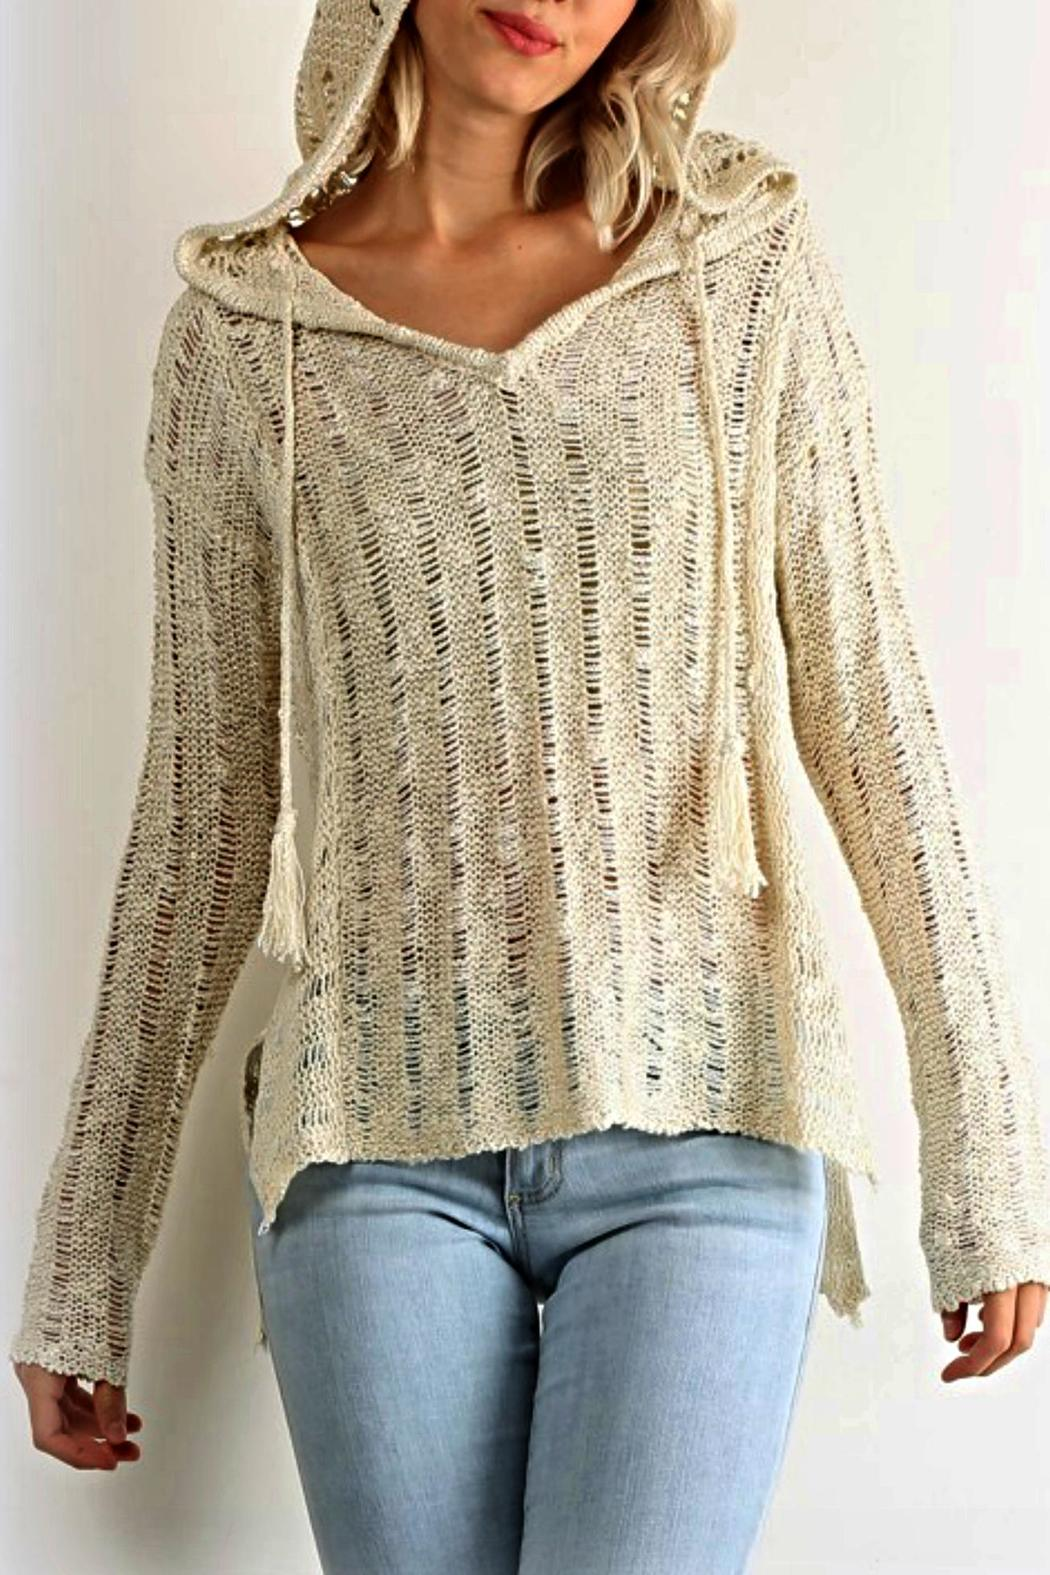 Hem Thread Crochet Hoodie Sweater From Chicago By What She Wants Boutique Shoptiques